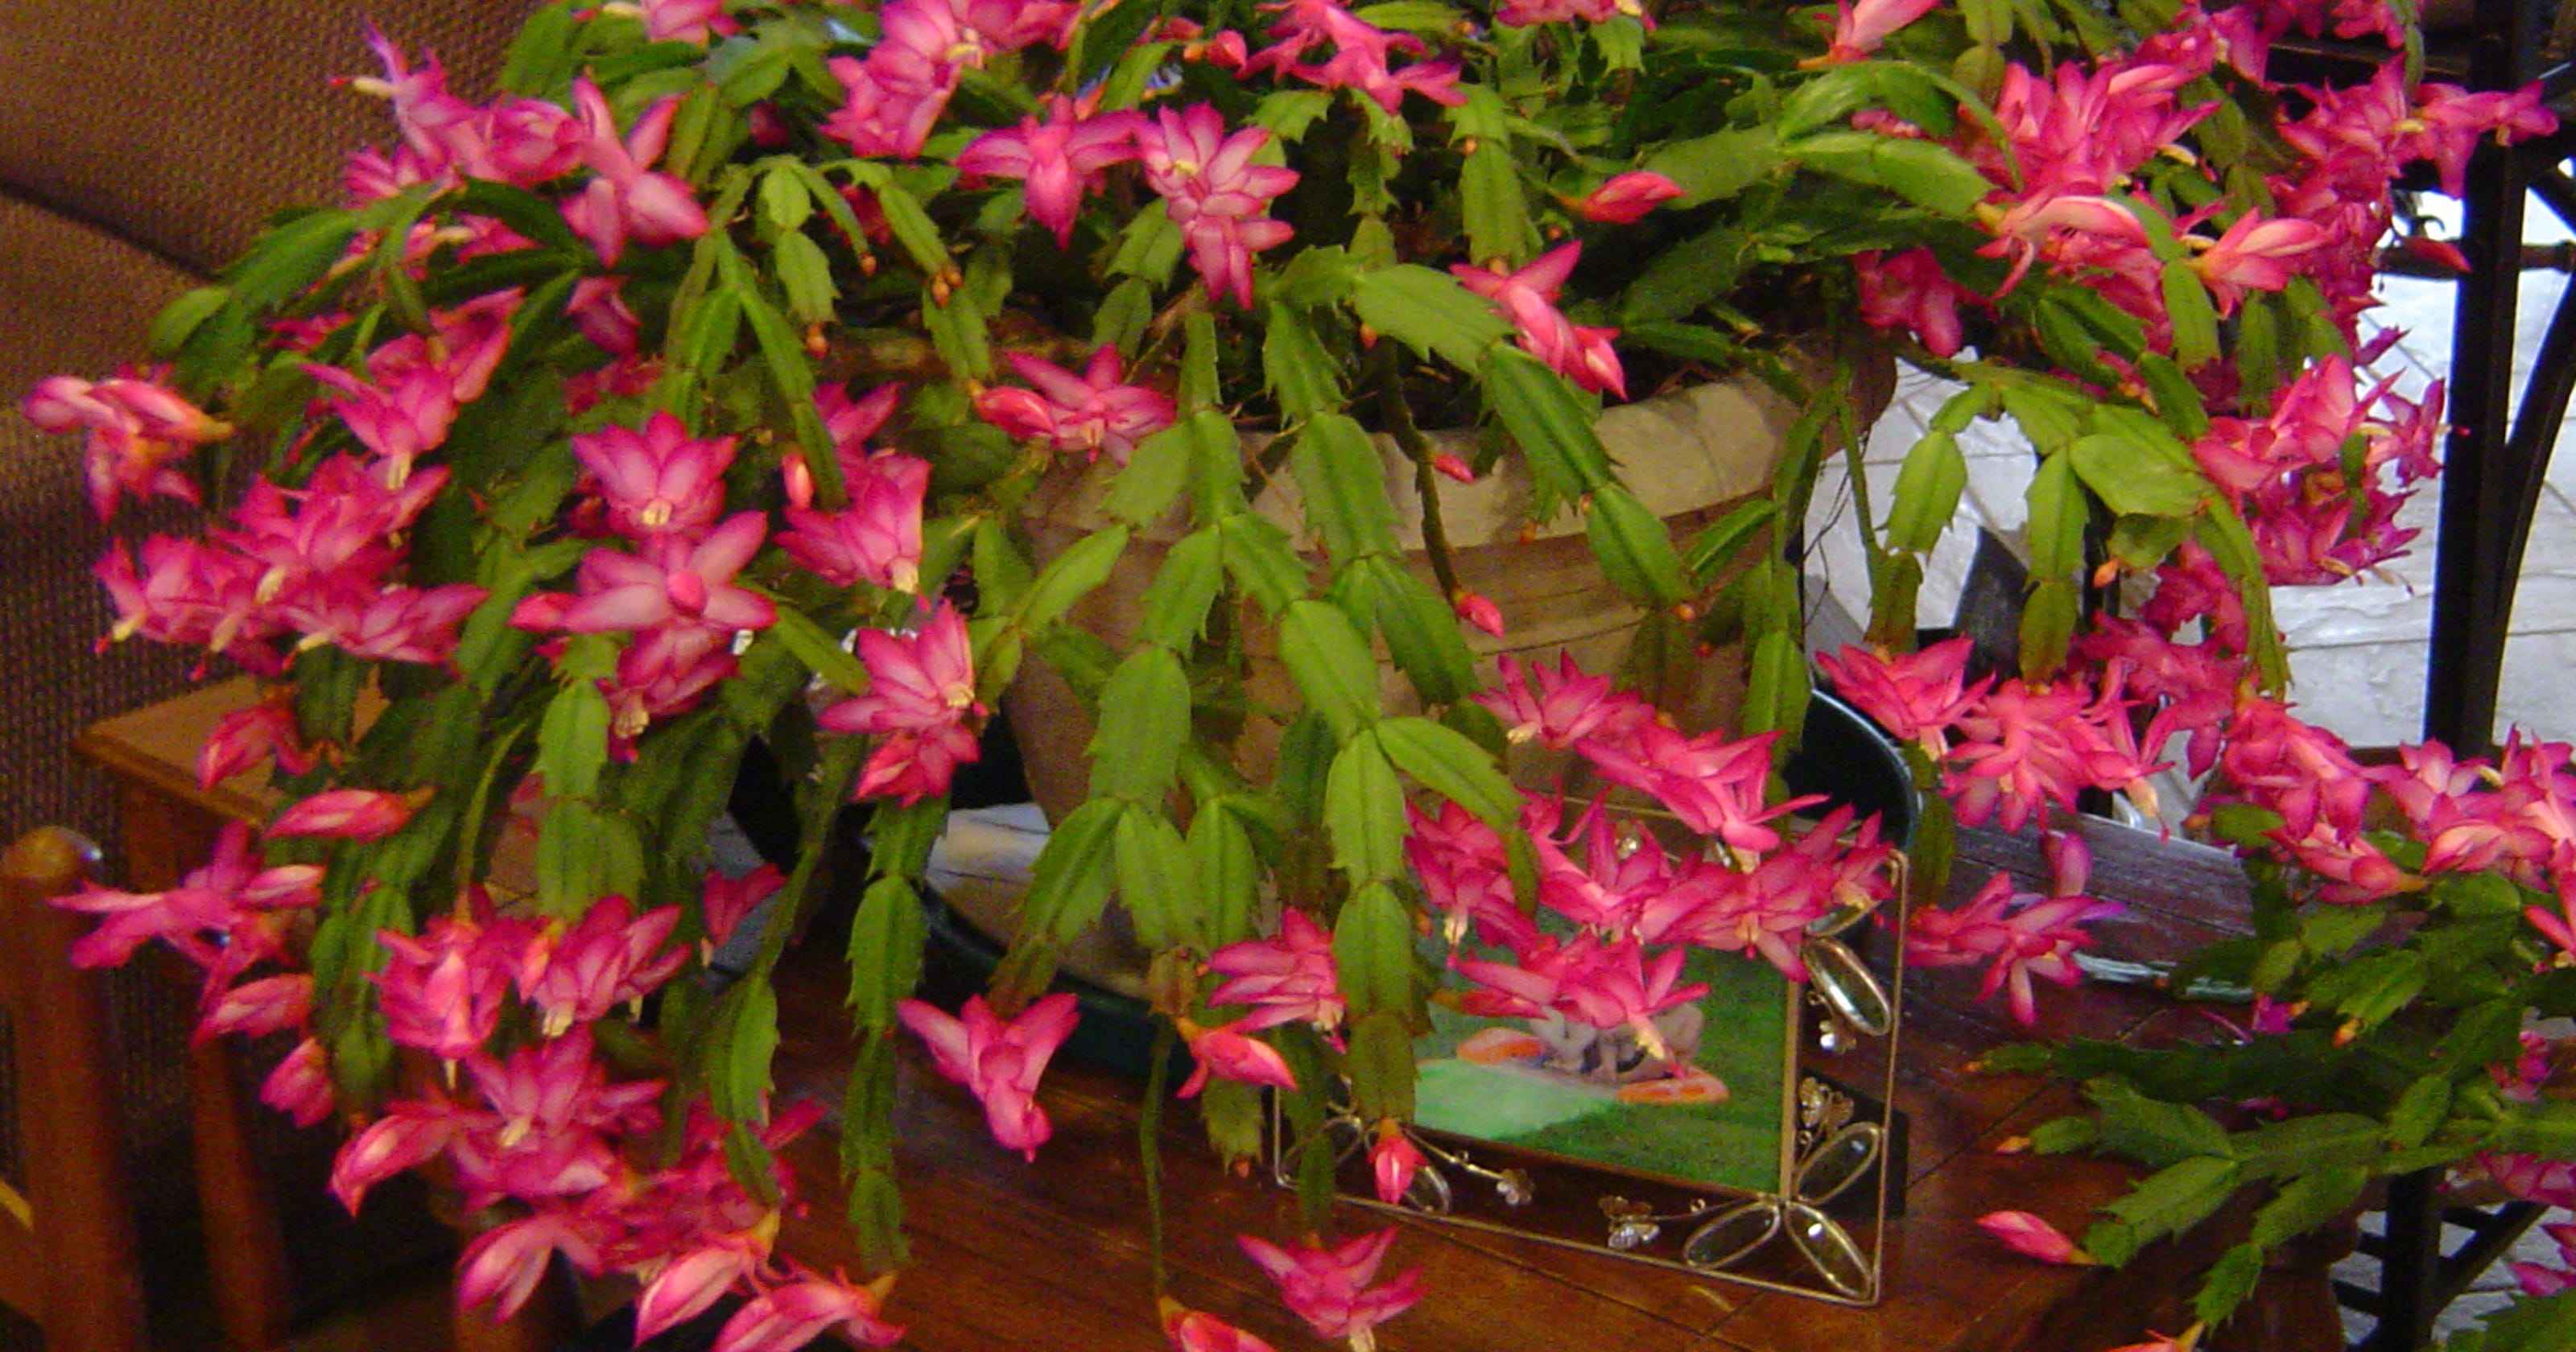 Caring For Christmas Cactus.Caring For A Christmas Cactus